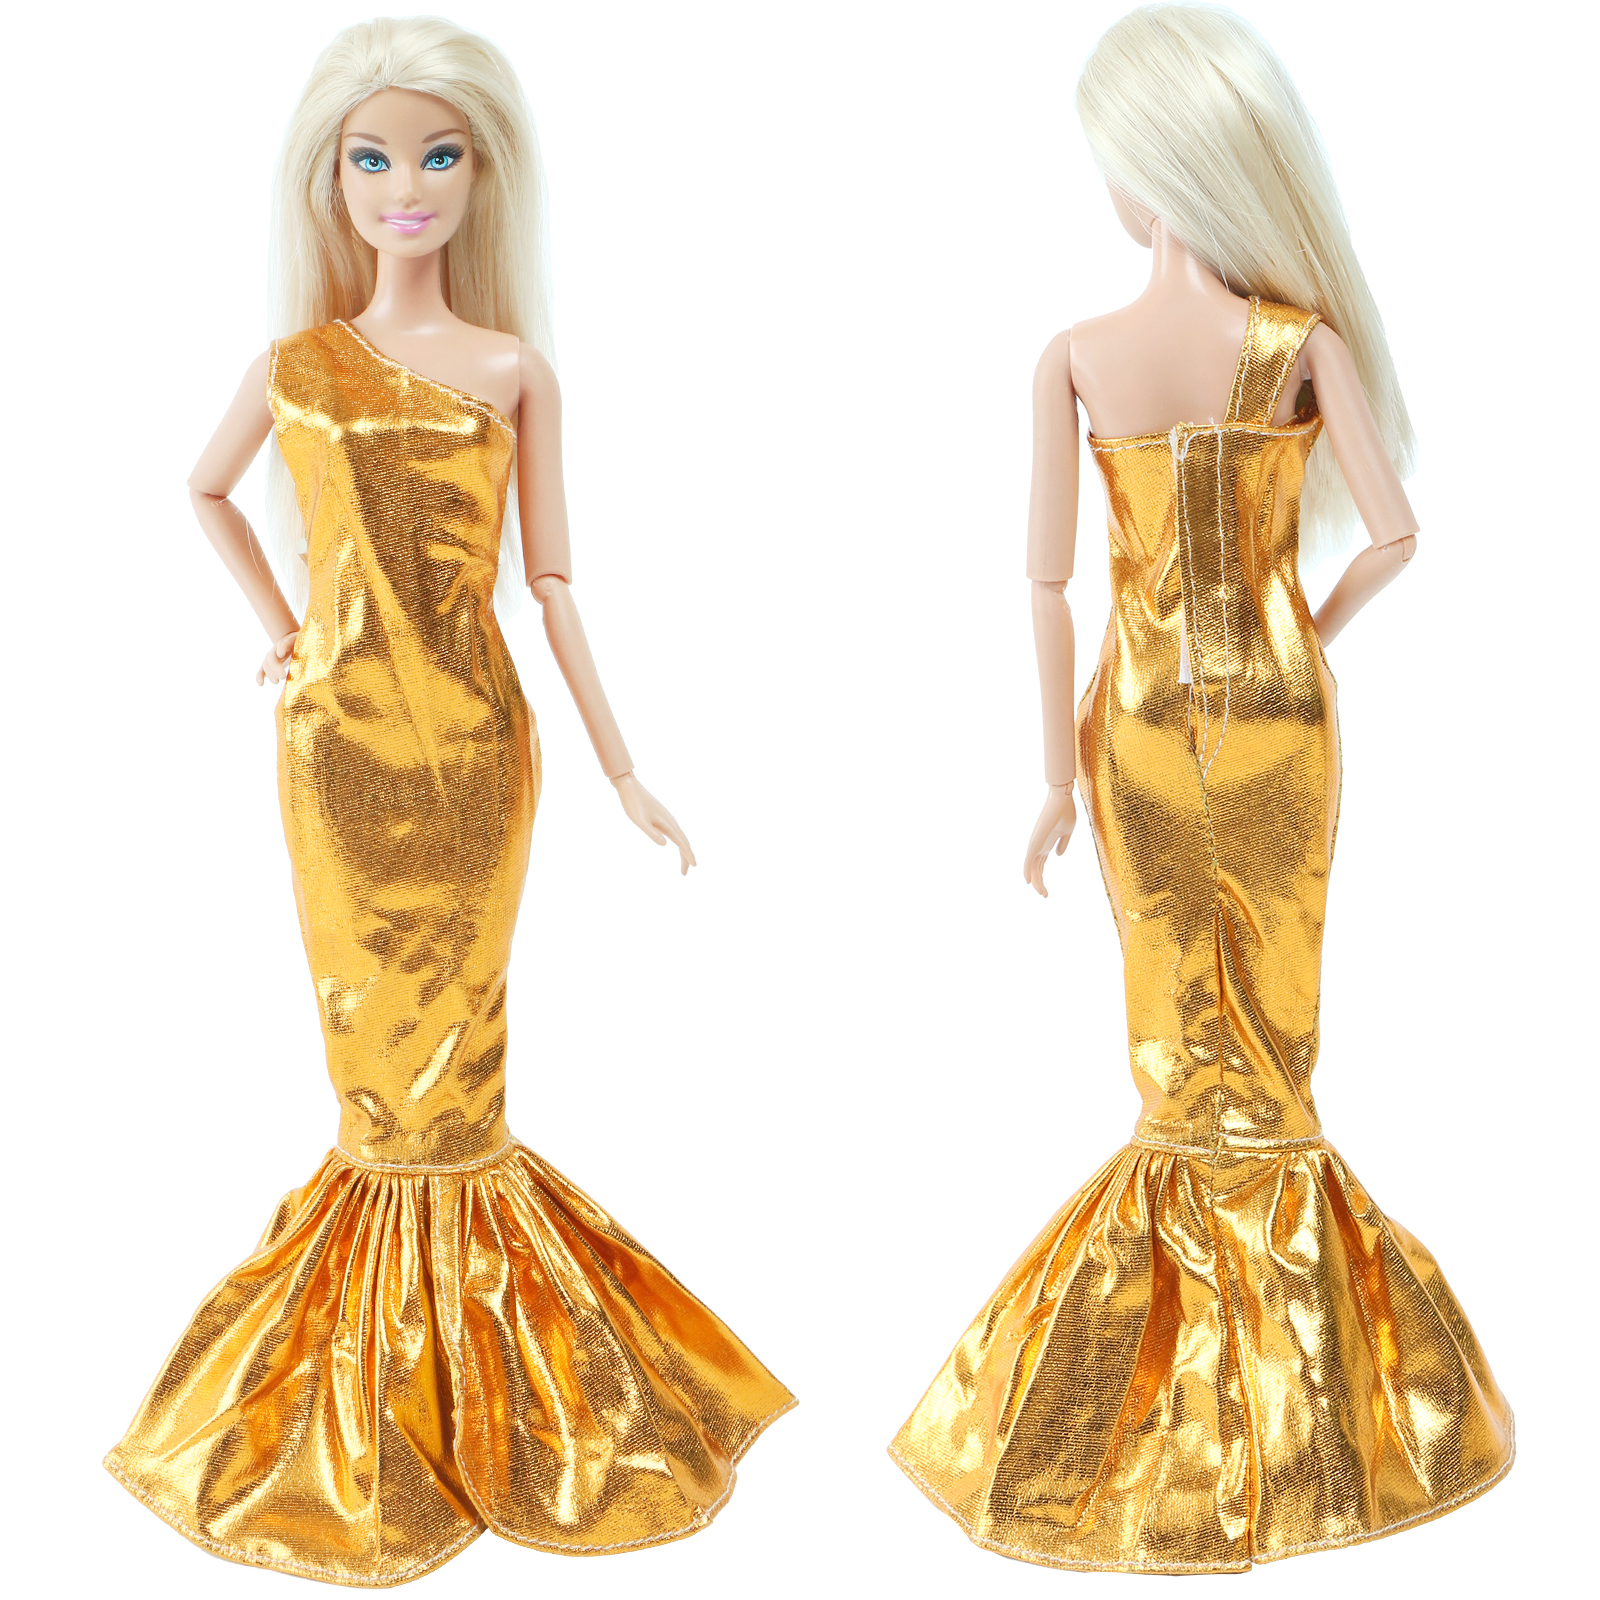 Fashion Style Gold One-shoulder Fishtail Dress Evening Party Skirt Long Gown Accessories Clothes For Barbie Doll Baby Toy